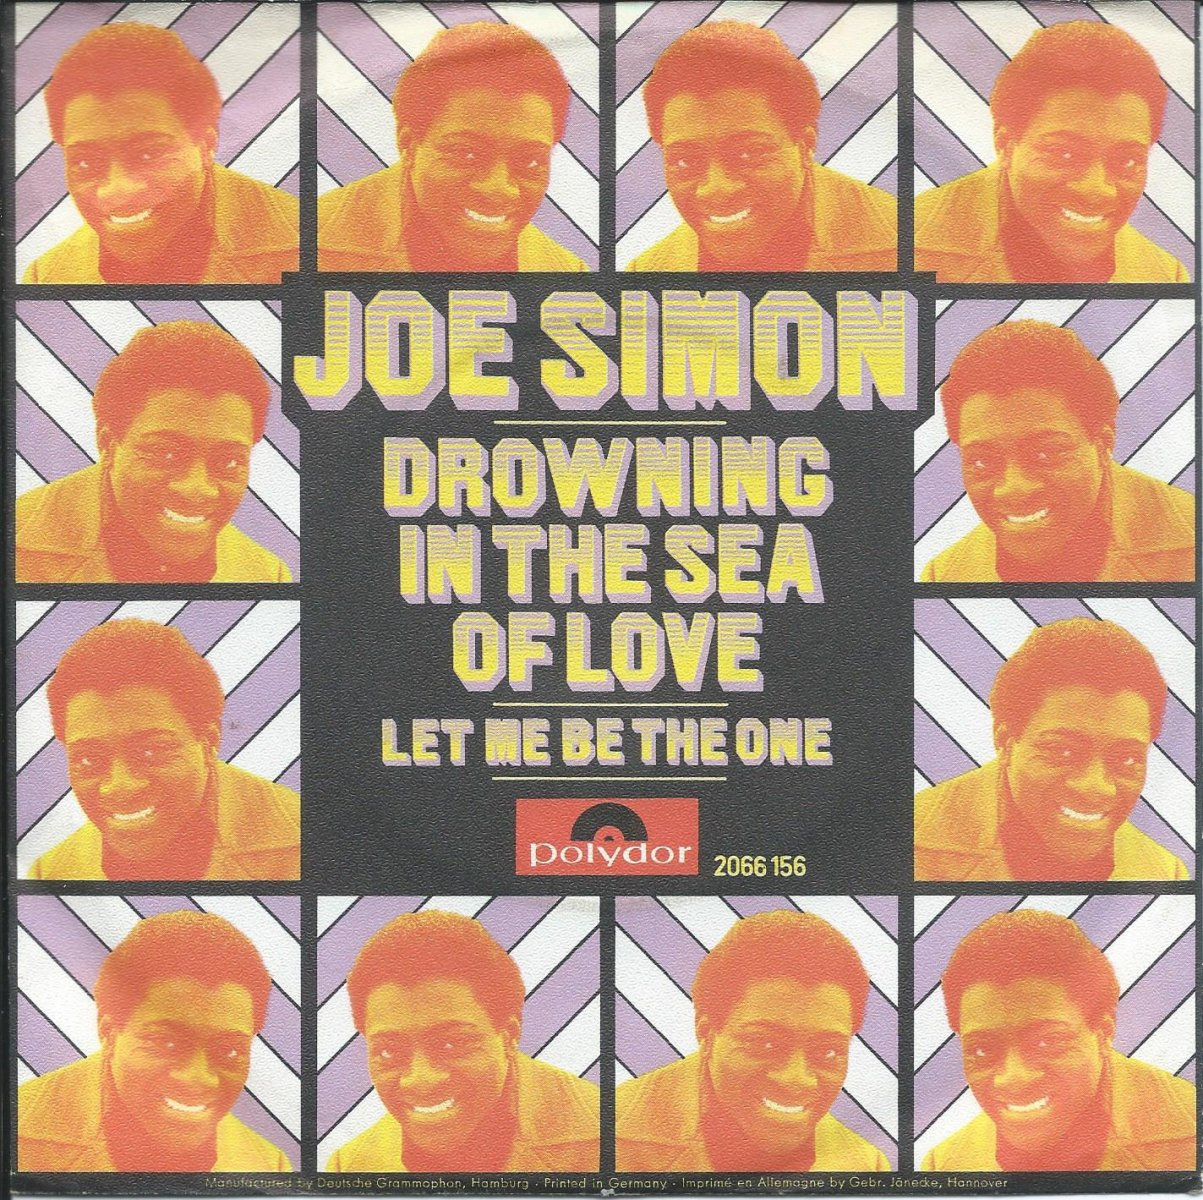 JOE SIMON / DROWNING IN THE SEA OF LOVE / LET ME BE THE ONE (THE ONE WHO LOVES YOU) (7